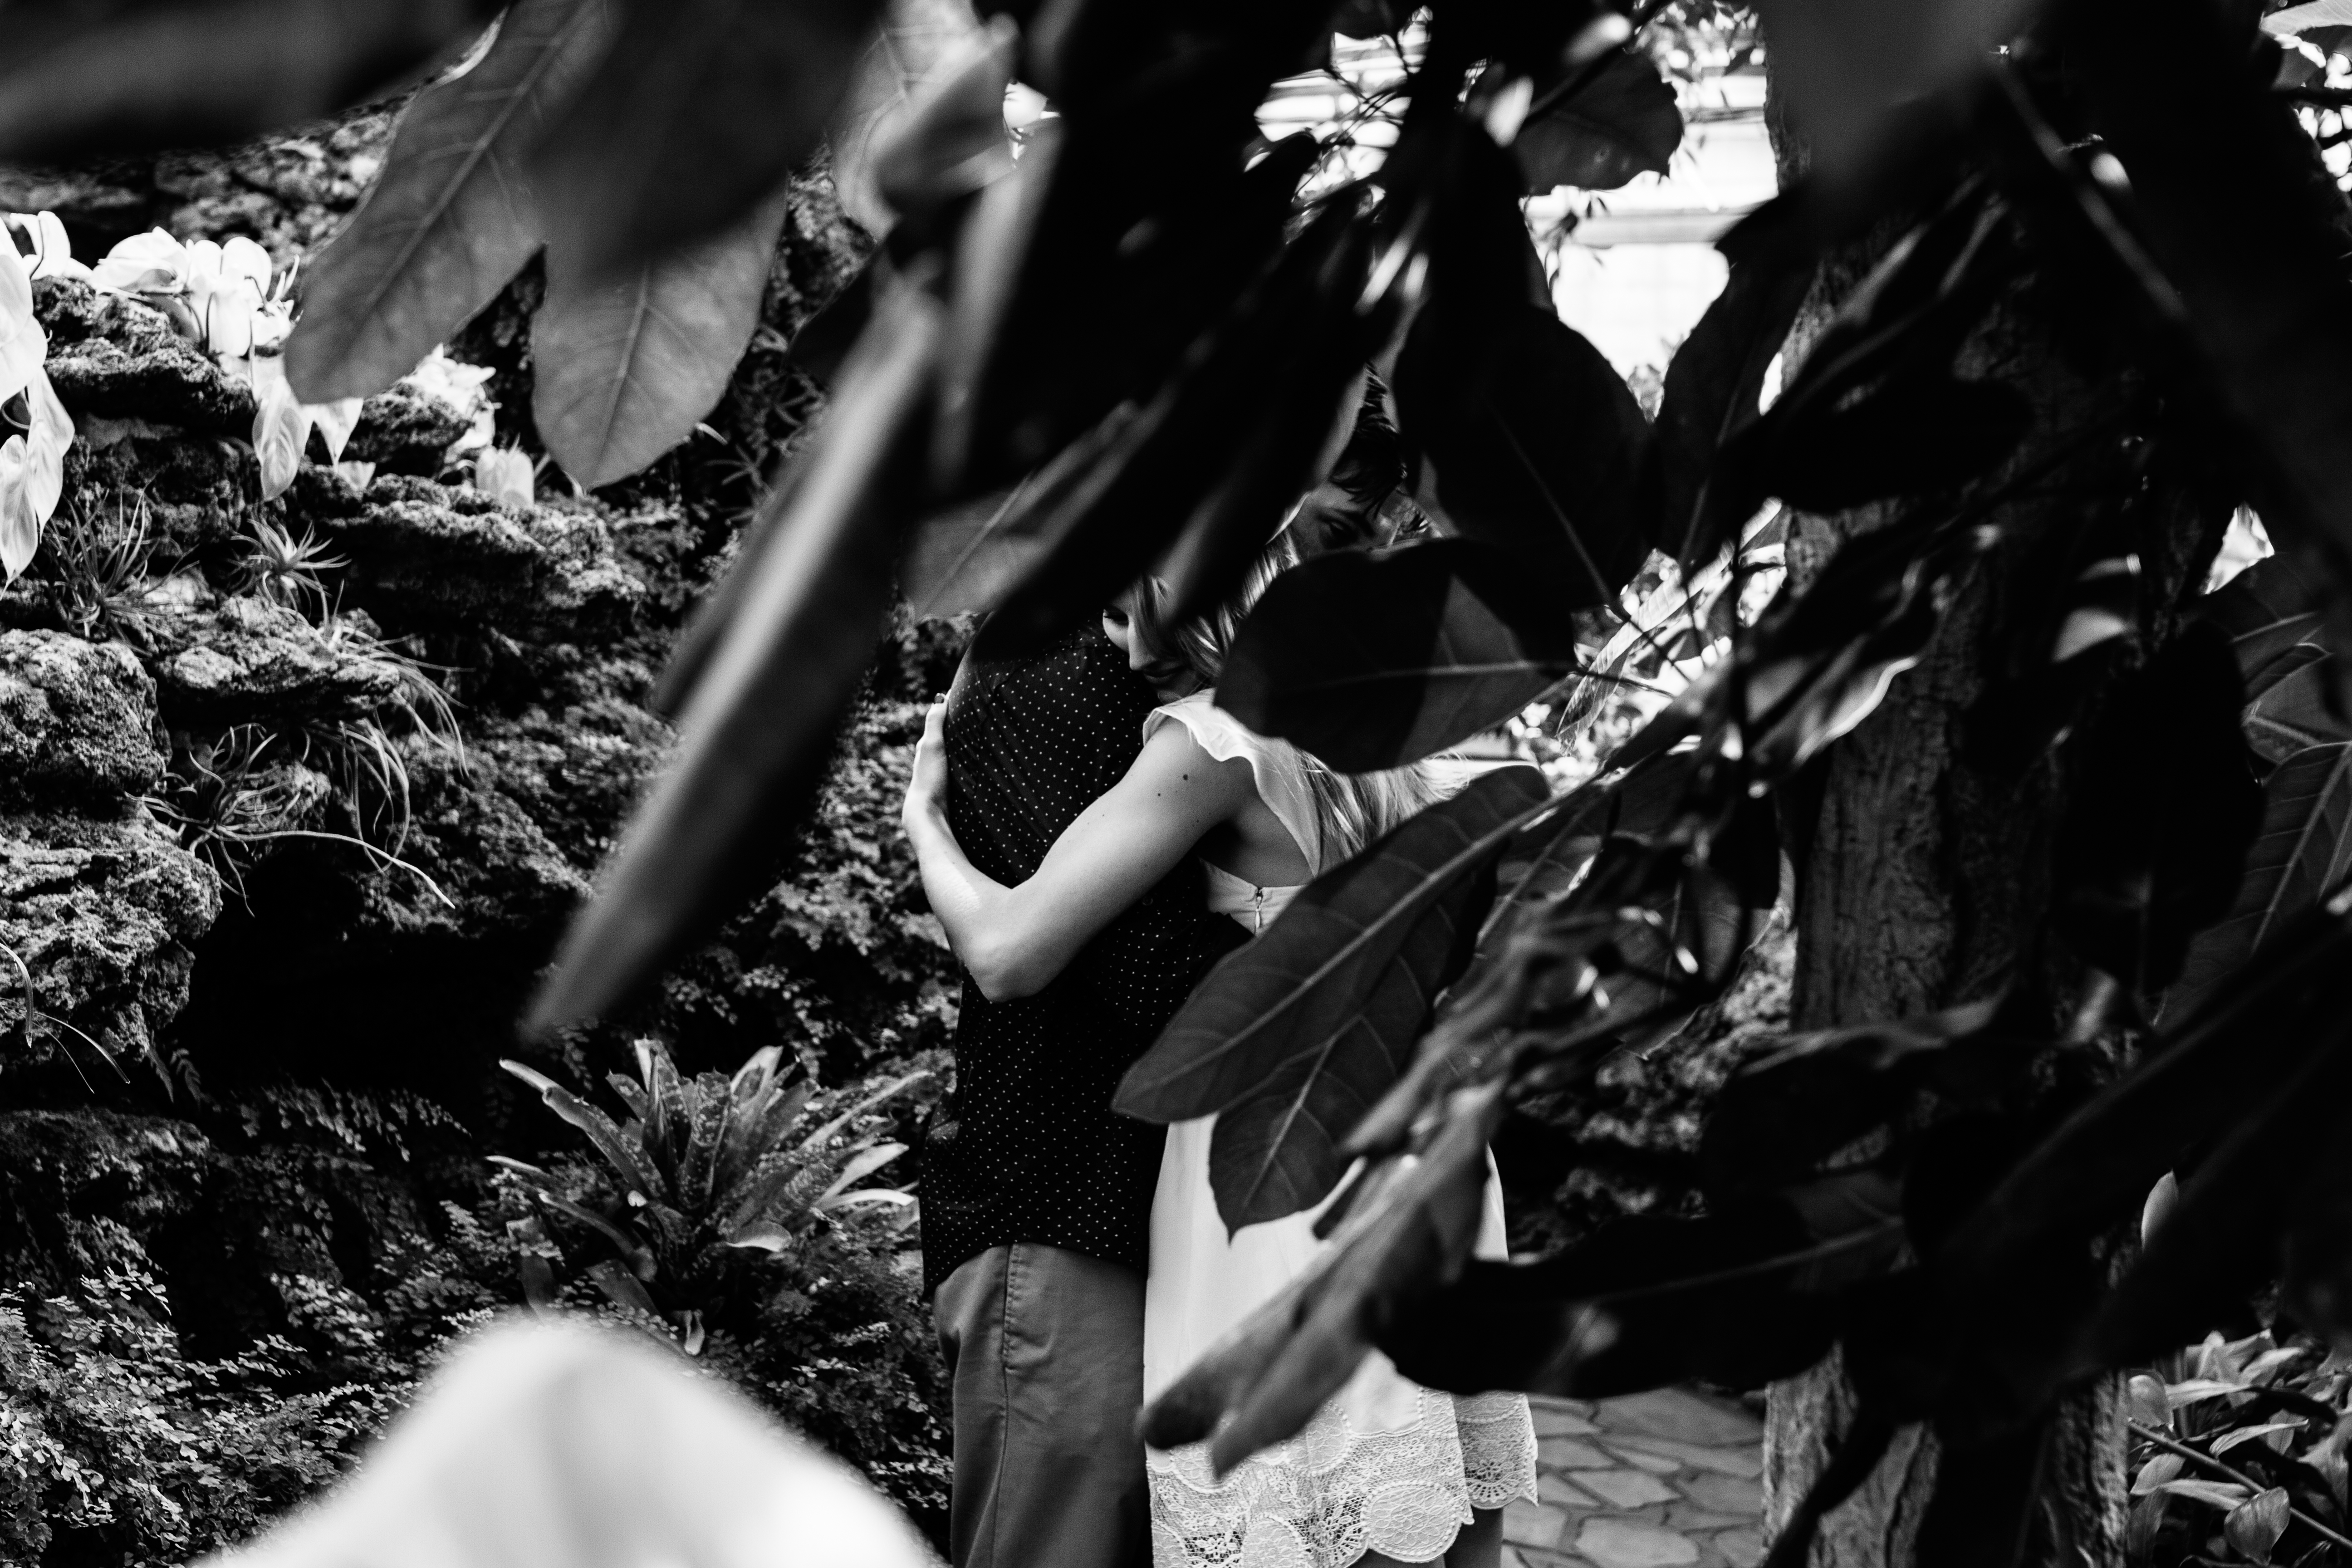 oak-park-conservatory-quiet-intimate-romantic--engagement-wedding-chicago-documentary-photographer-r